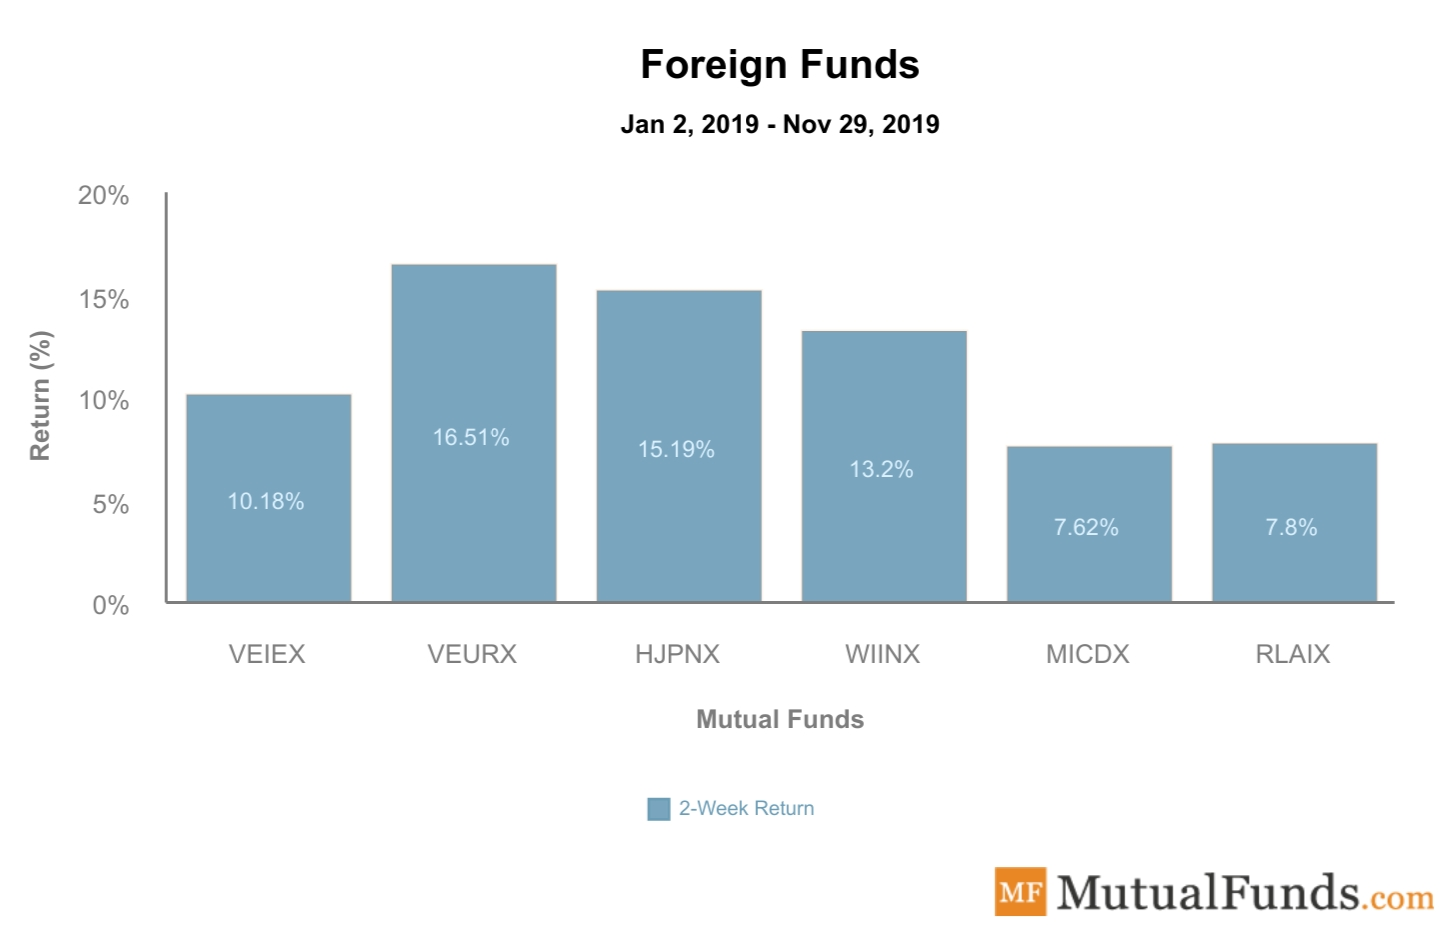 Foreign Funds Performance Dec 24, 2019